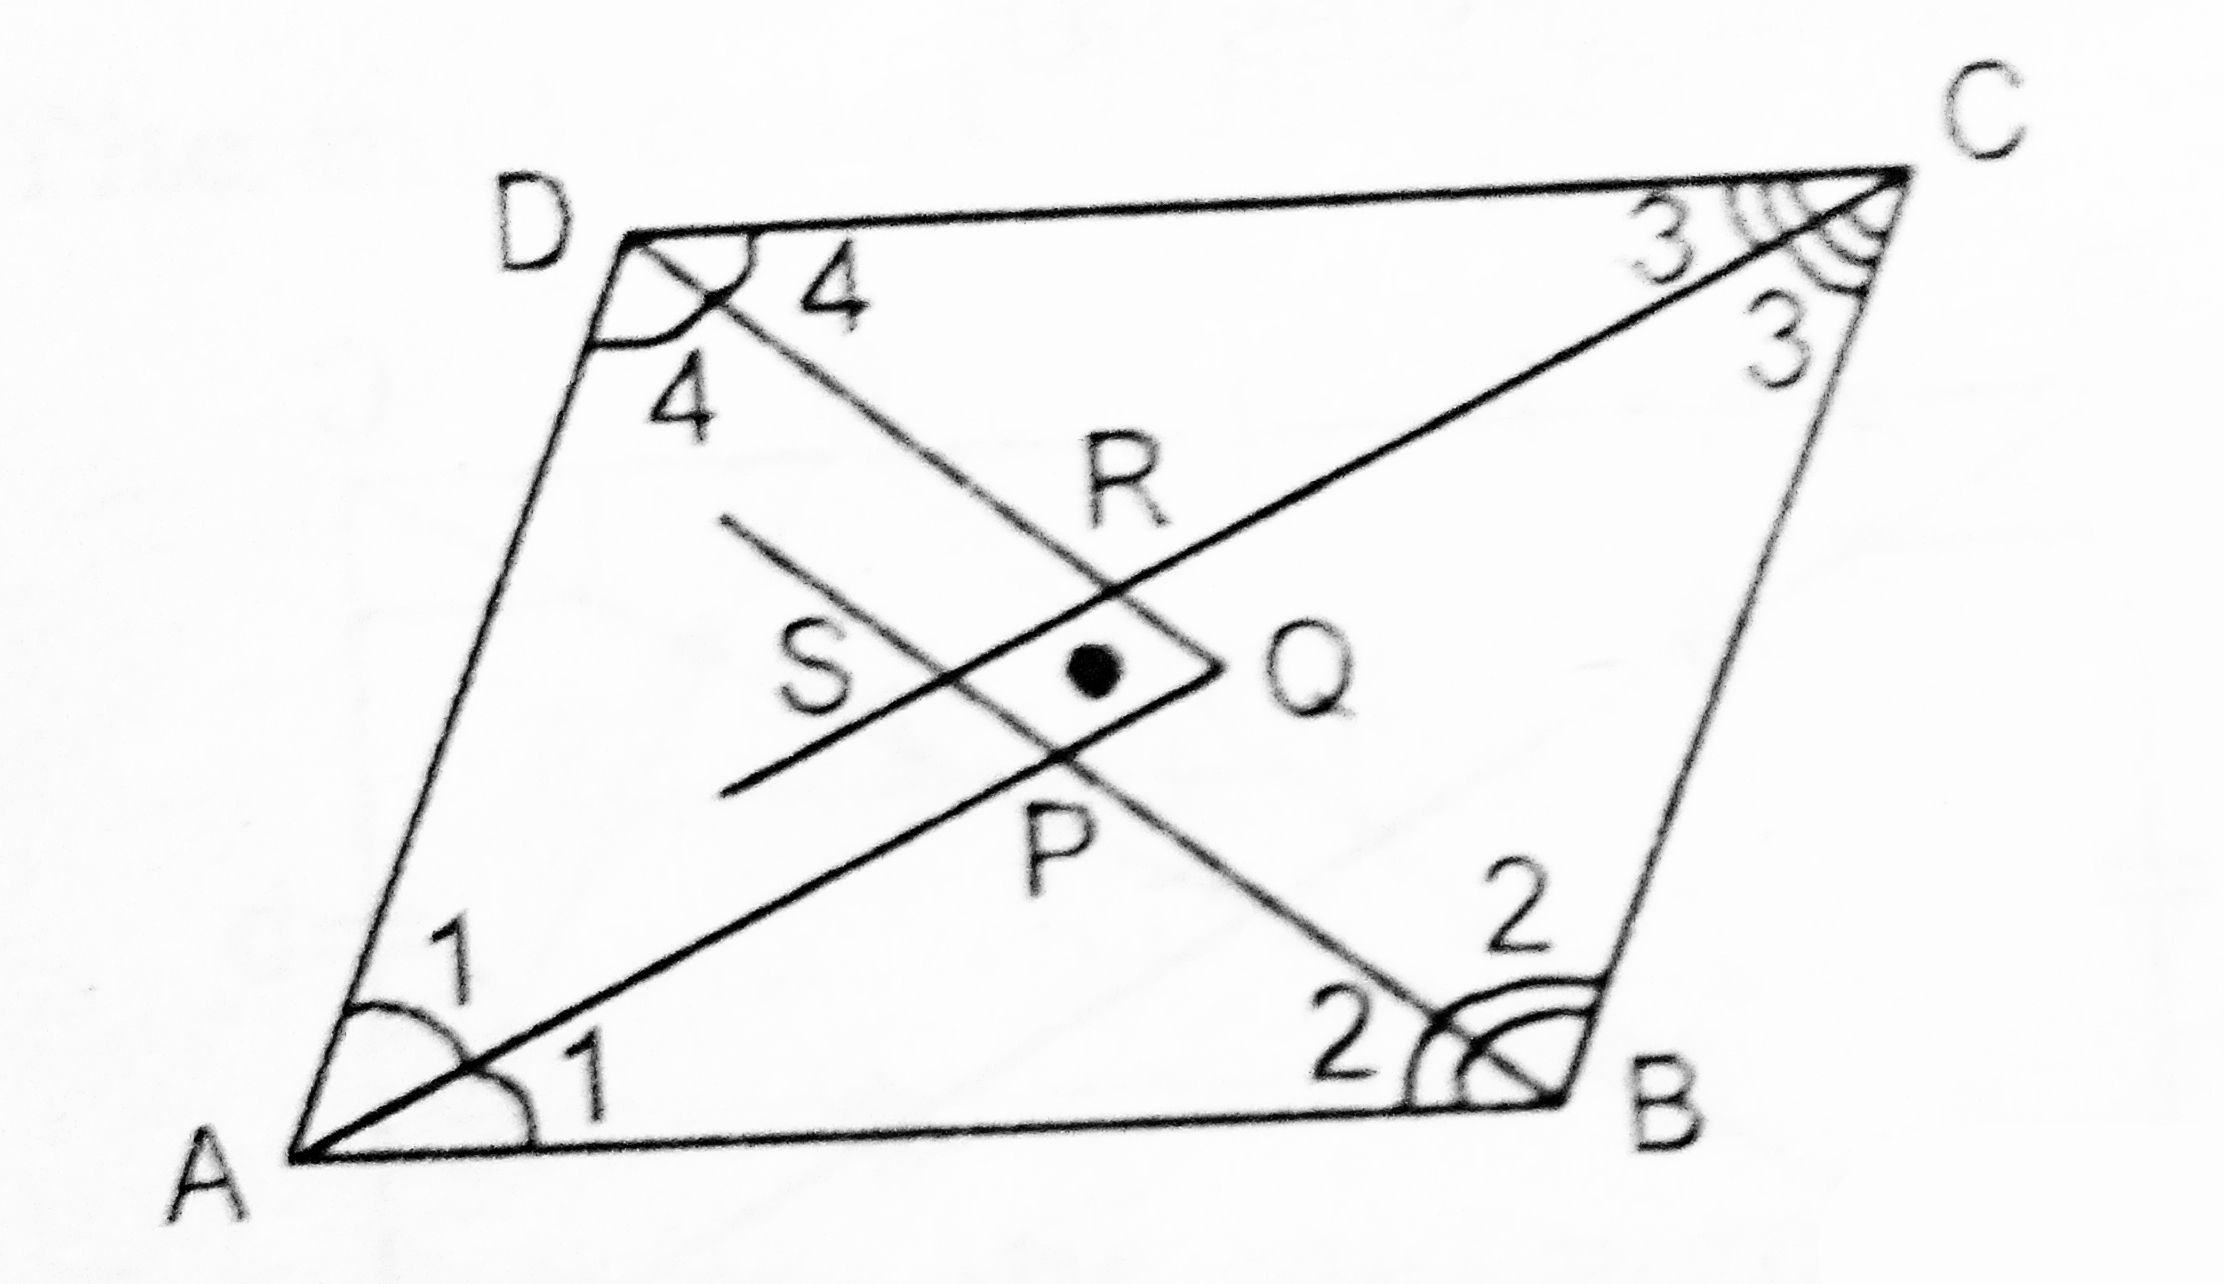 Triangle Angle Sum Worksheet Answer Key